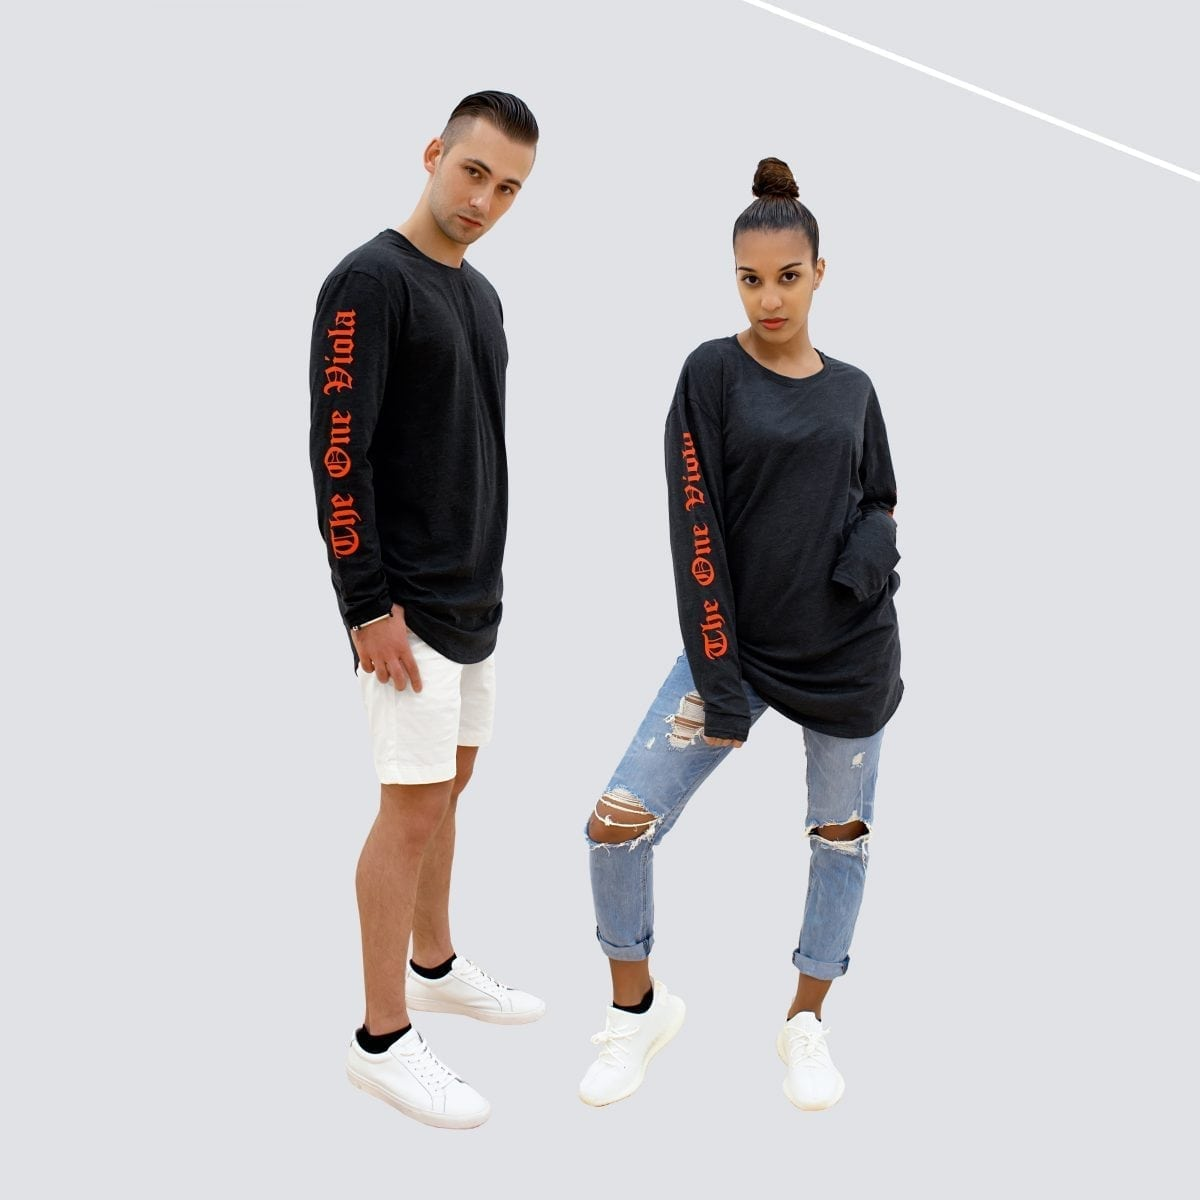 man and woman wearing unisex oversized long sleeve grey streetwear shirt